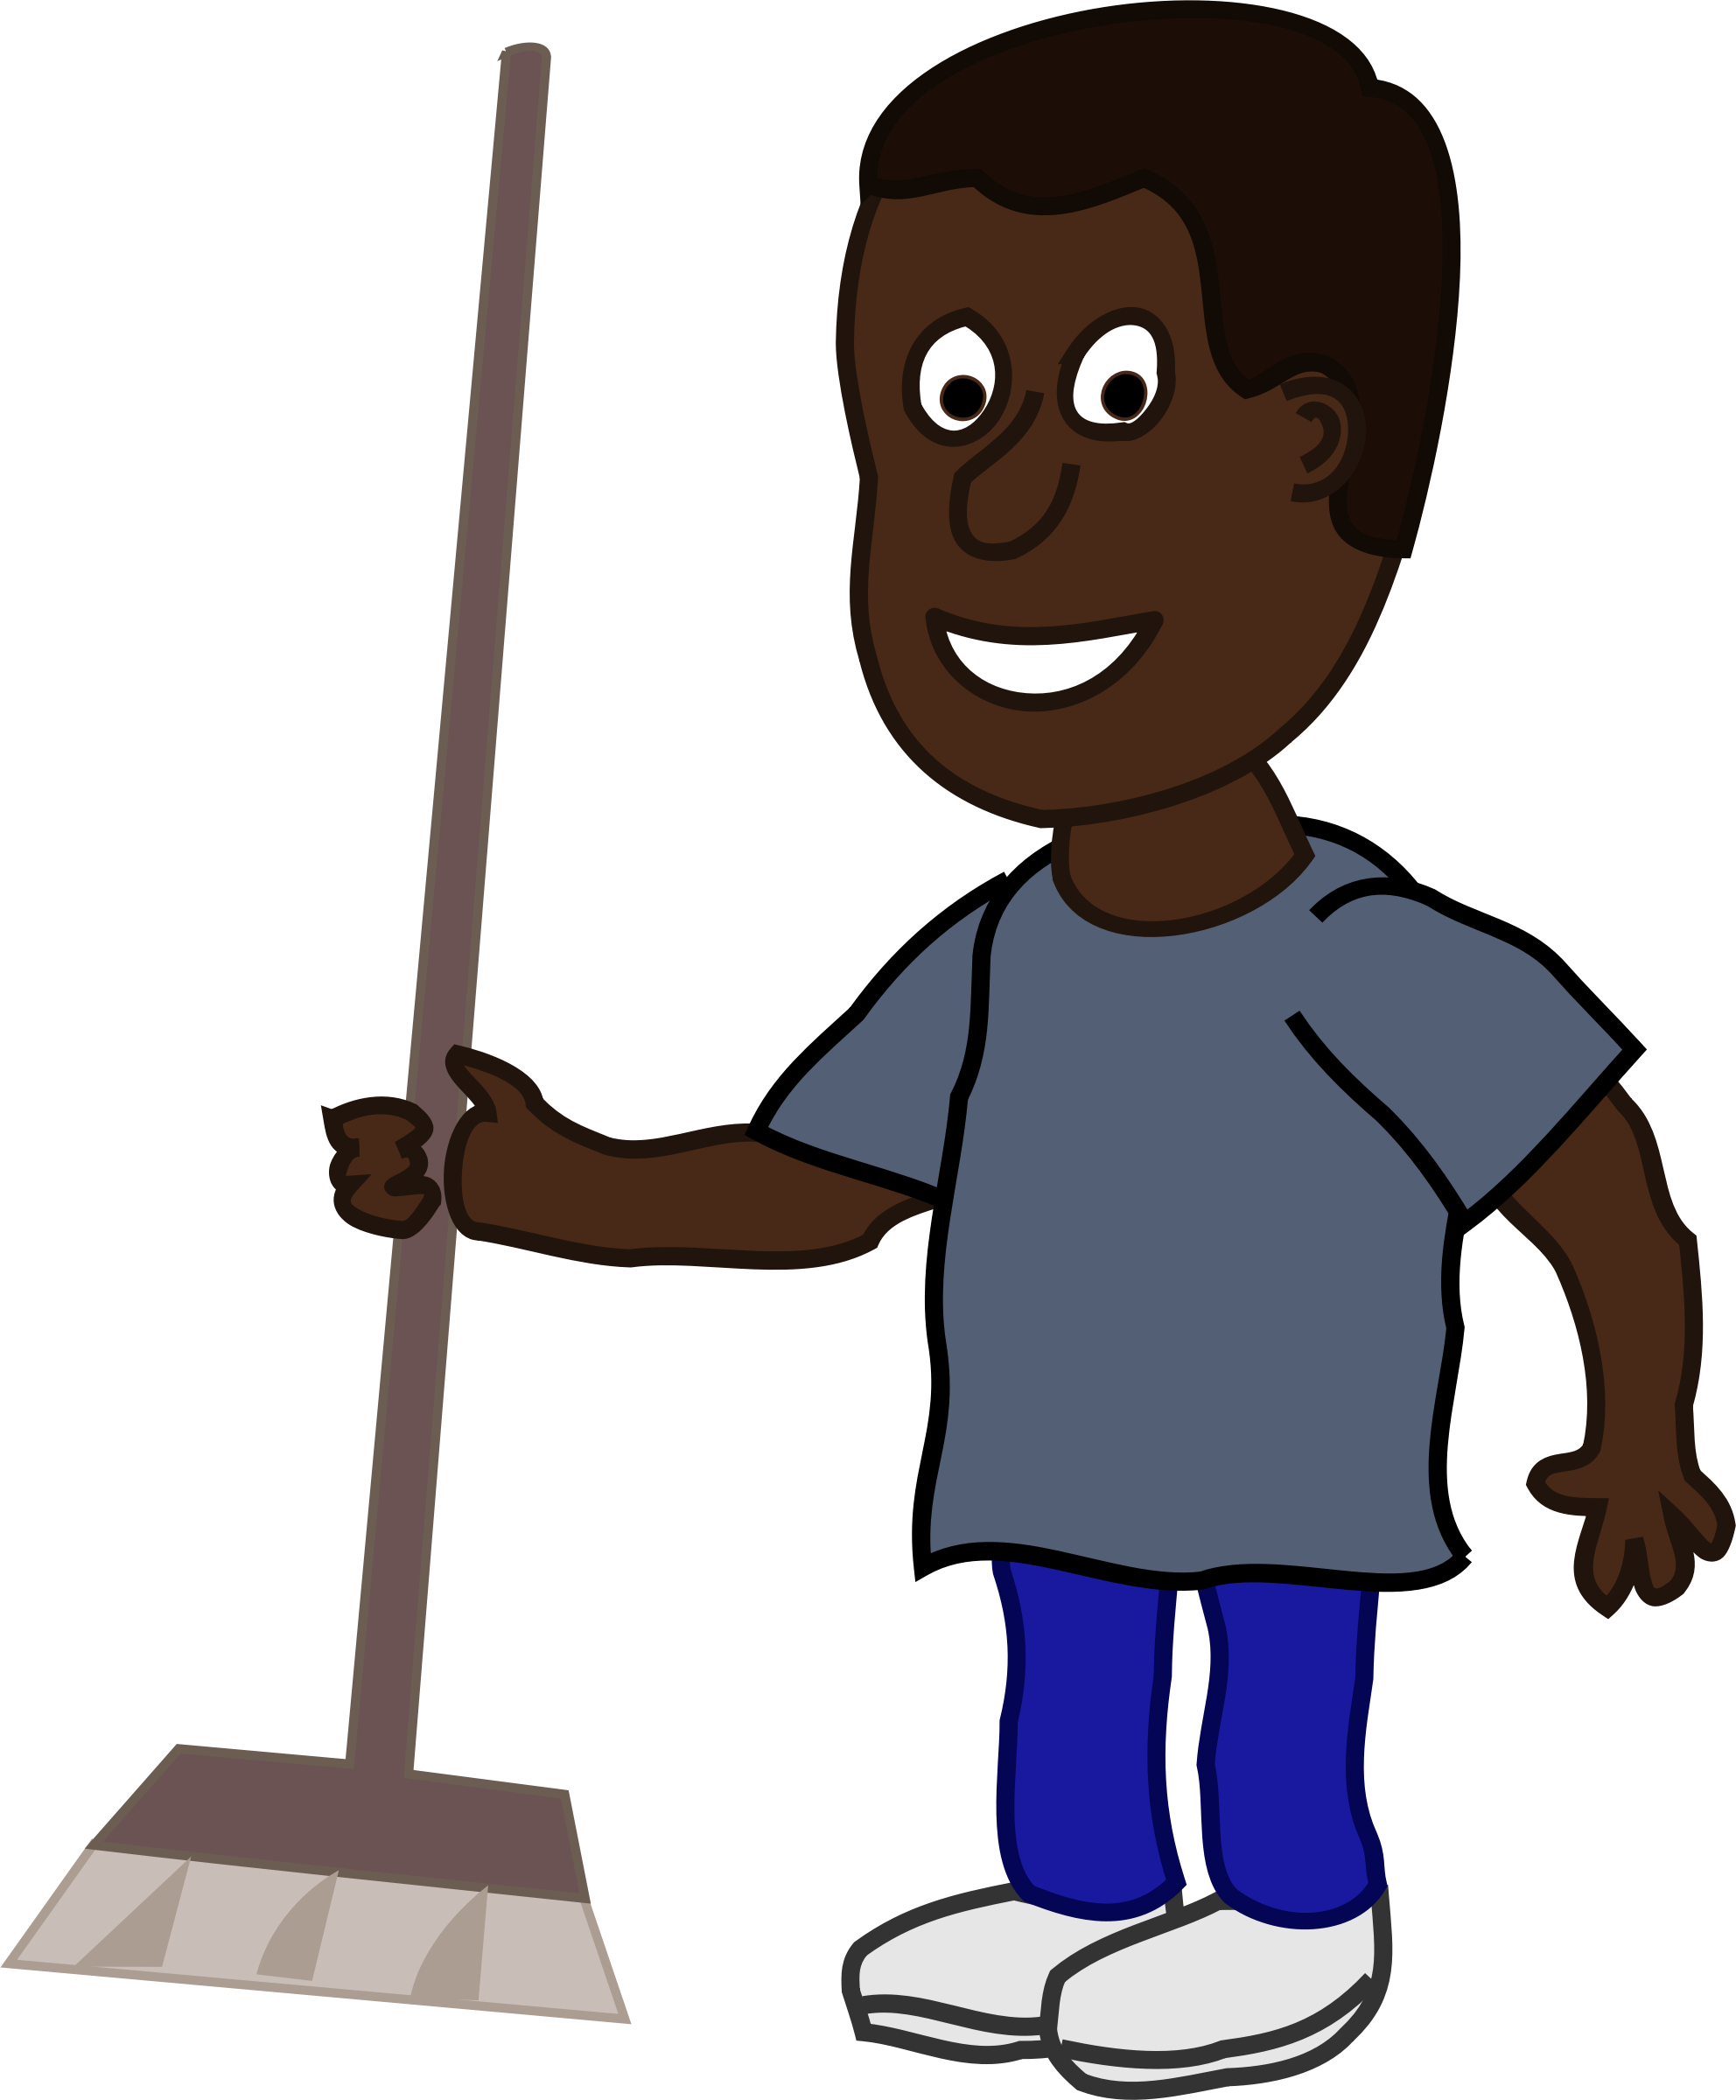 With broom big image. African clipart man african